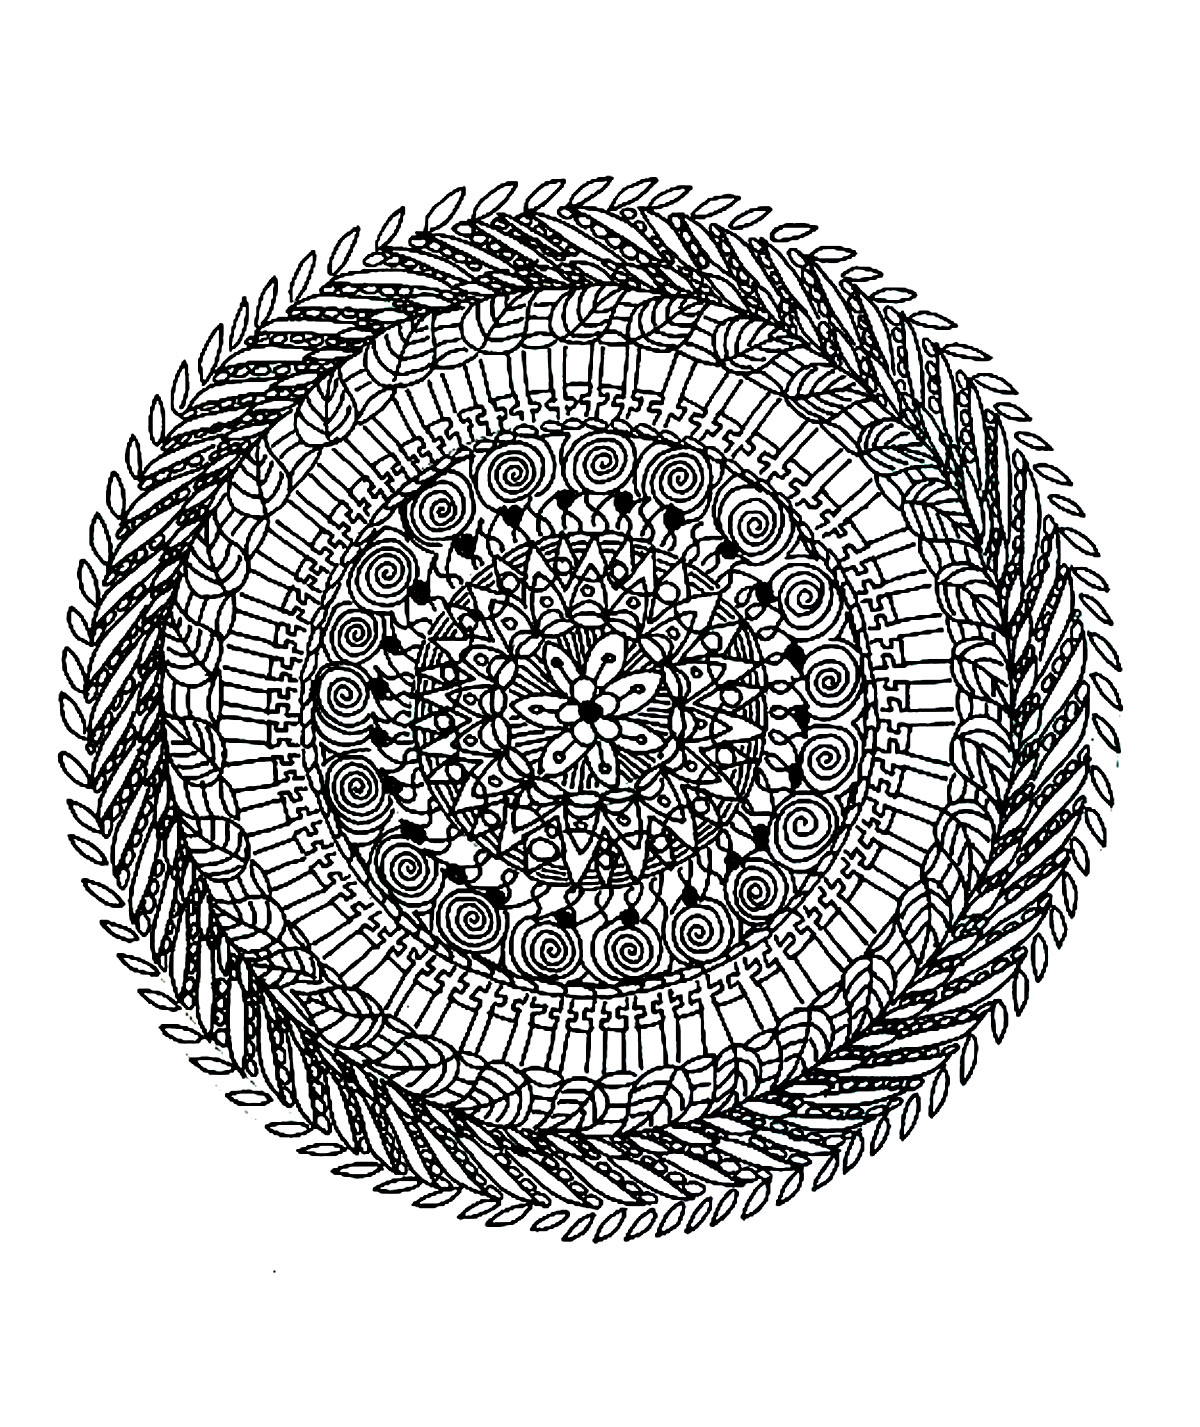 Very dark Mandala drawing with vegetal elements. A luxuriant vegetation invades this magnificent Mandala, give it life without delay. Do whatever it takes to get rid of any distractions that may interfere with your coloring.